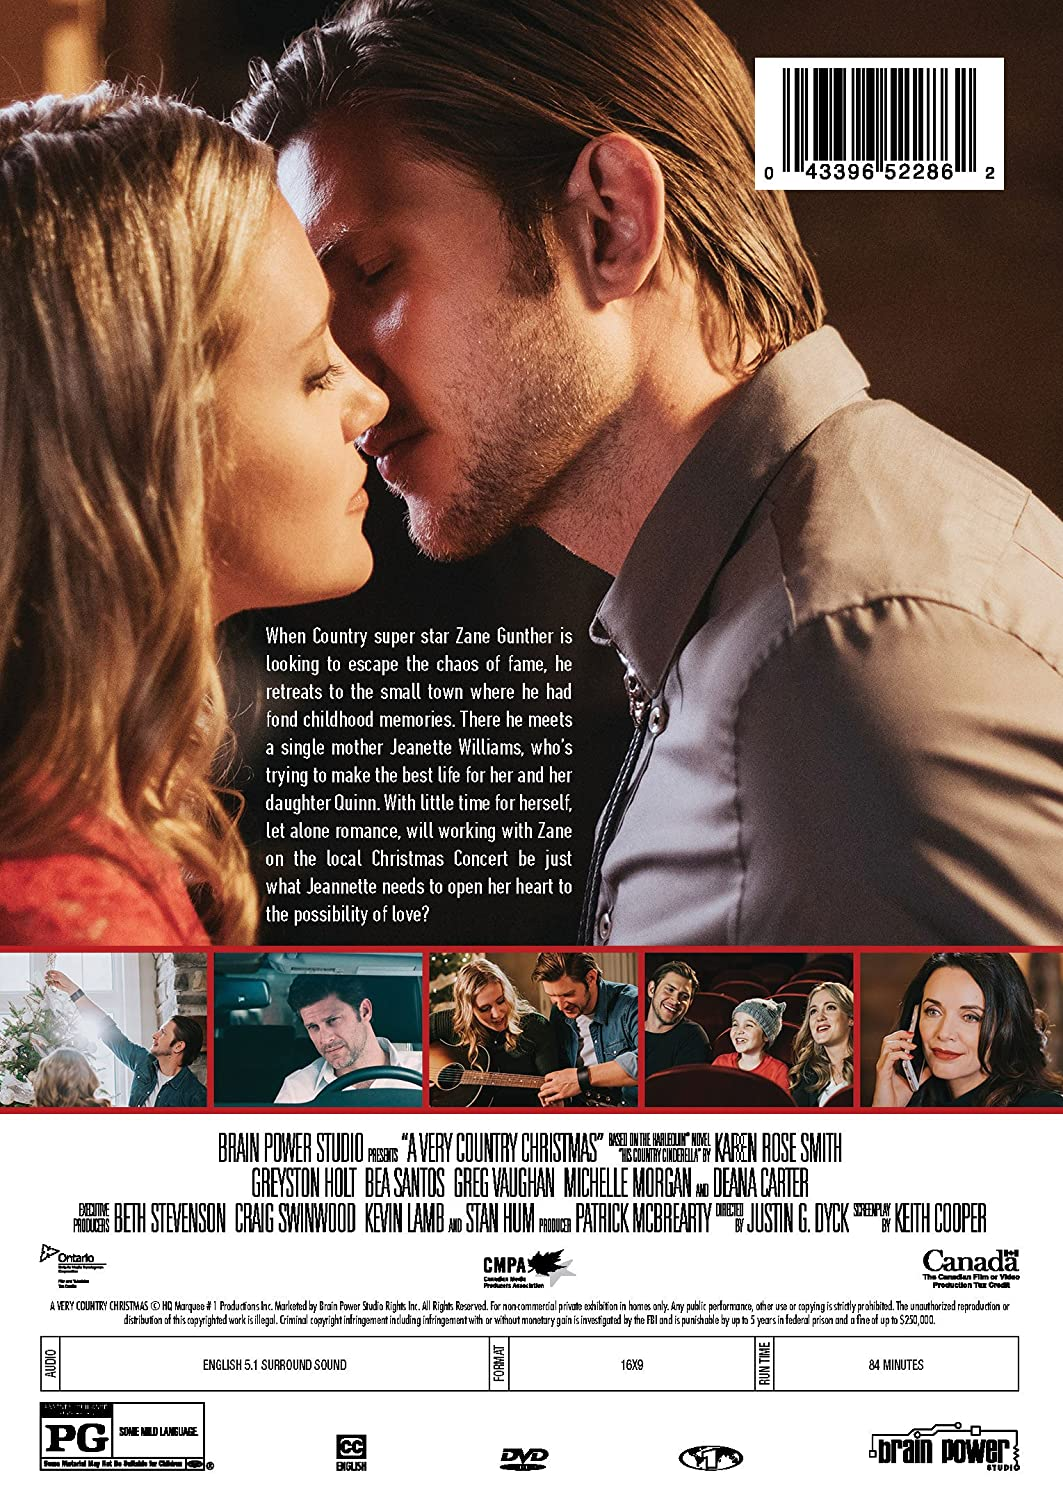 amazoncom a very country christmas greyston holt bea santos greg vaughan michelle morgan justin dyck movies tv - Country Christmas Movie